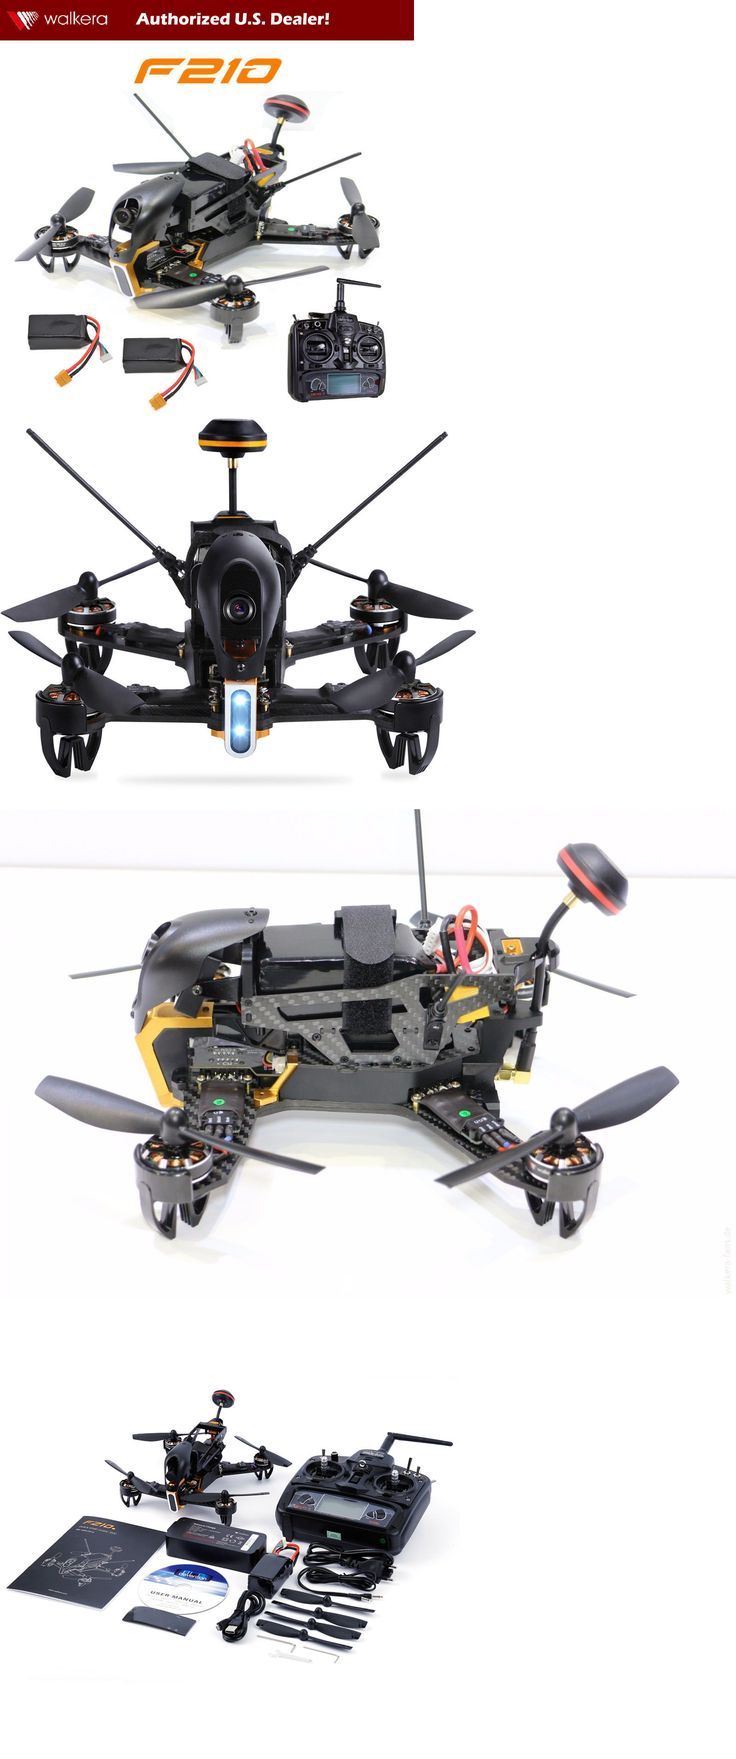 Quadcopters and Multicopters 182185: Walkera F210 Rtf1 Quadcopter Racing Drone W Devo 7, 700Tvl Camera And 2 Batteries -> BUY IT NOW ONLY: $309.99 on eBay!